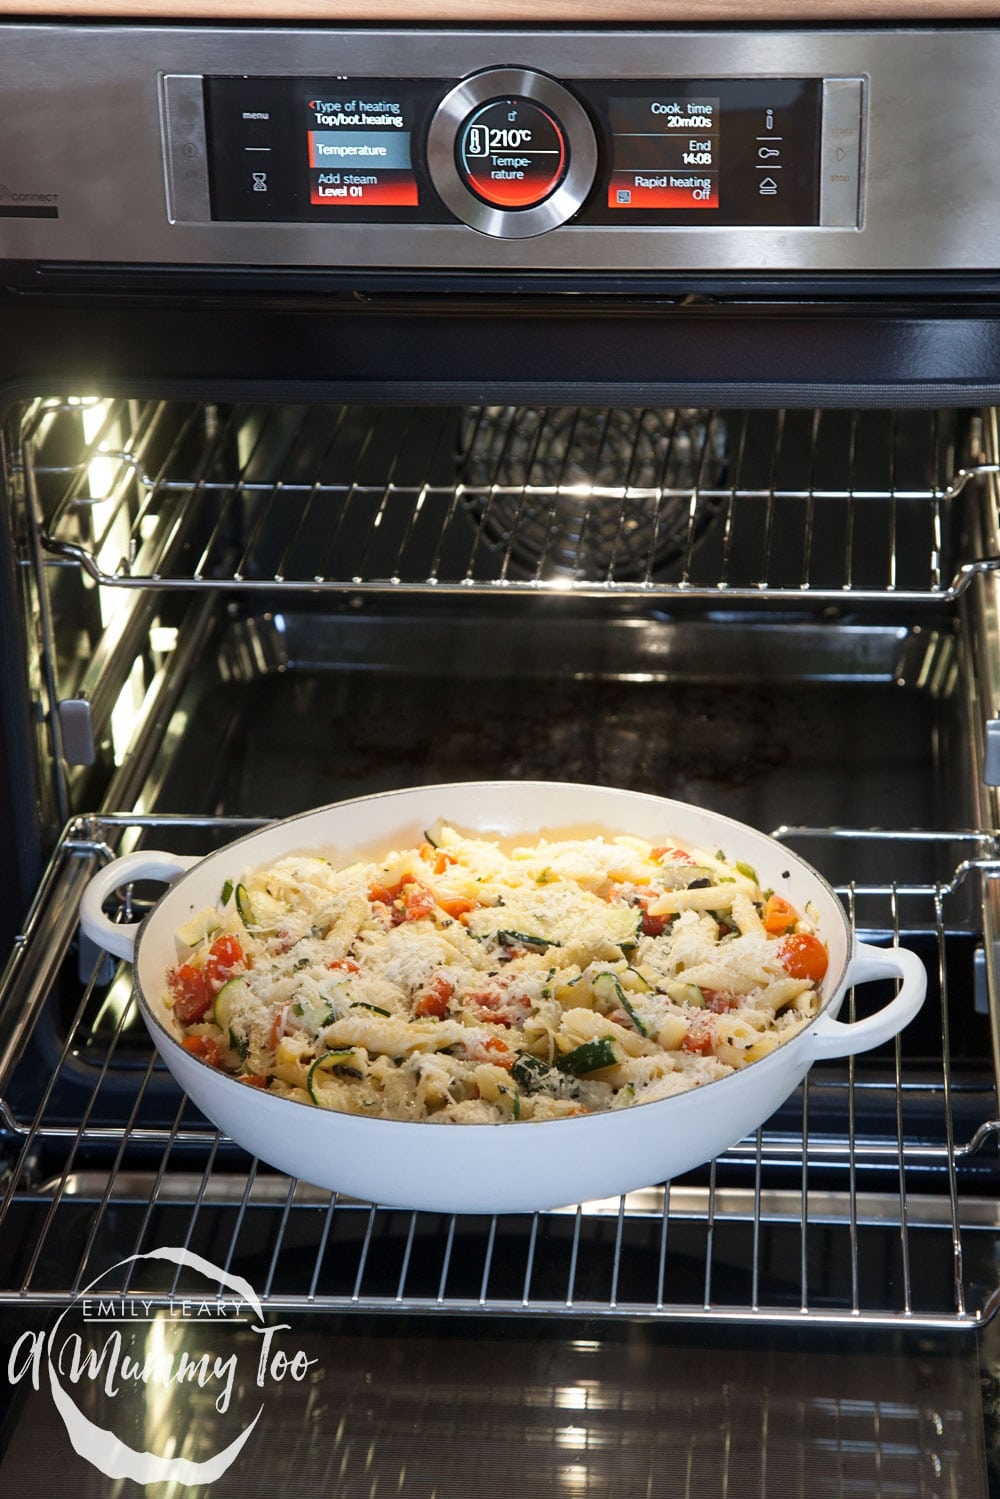 The courgette and black olive pasta gratin baking in the Bosch Serie 8 oven